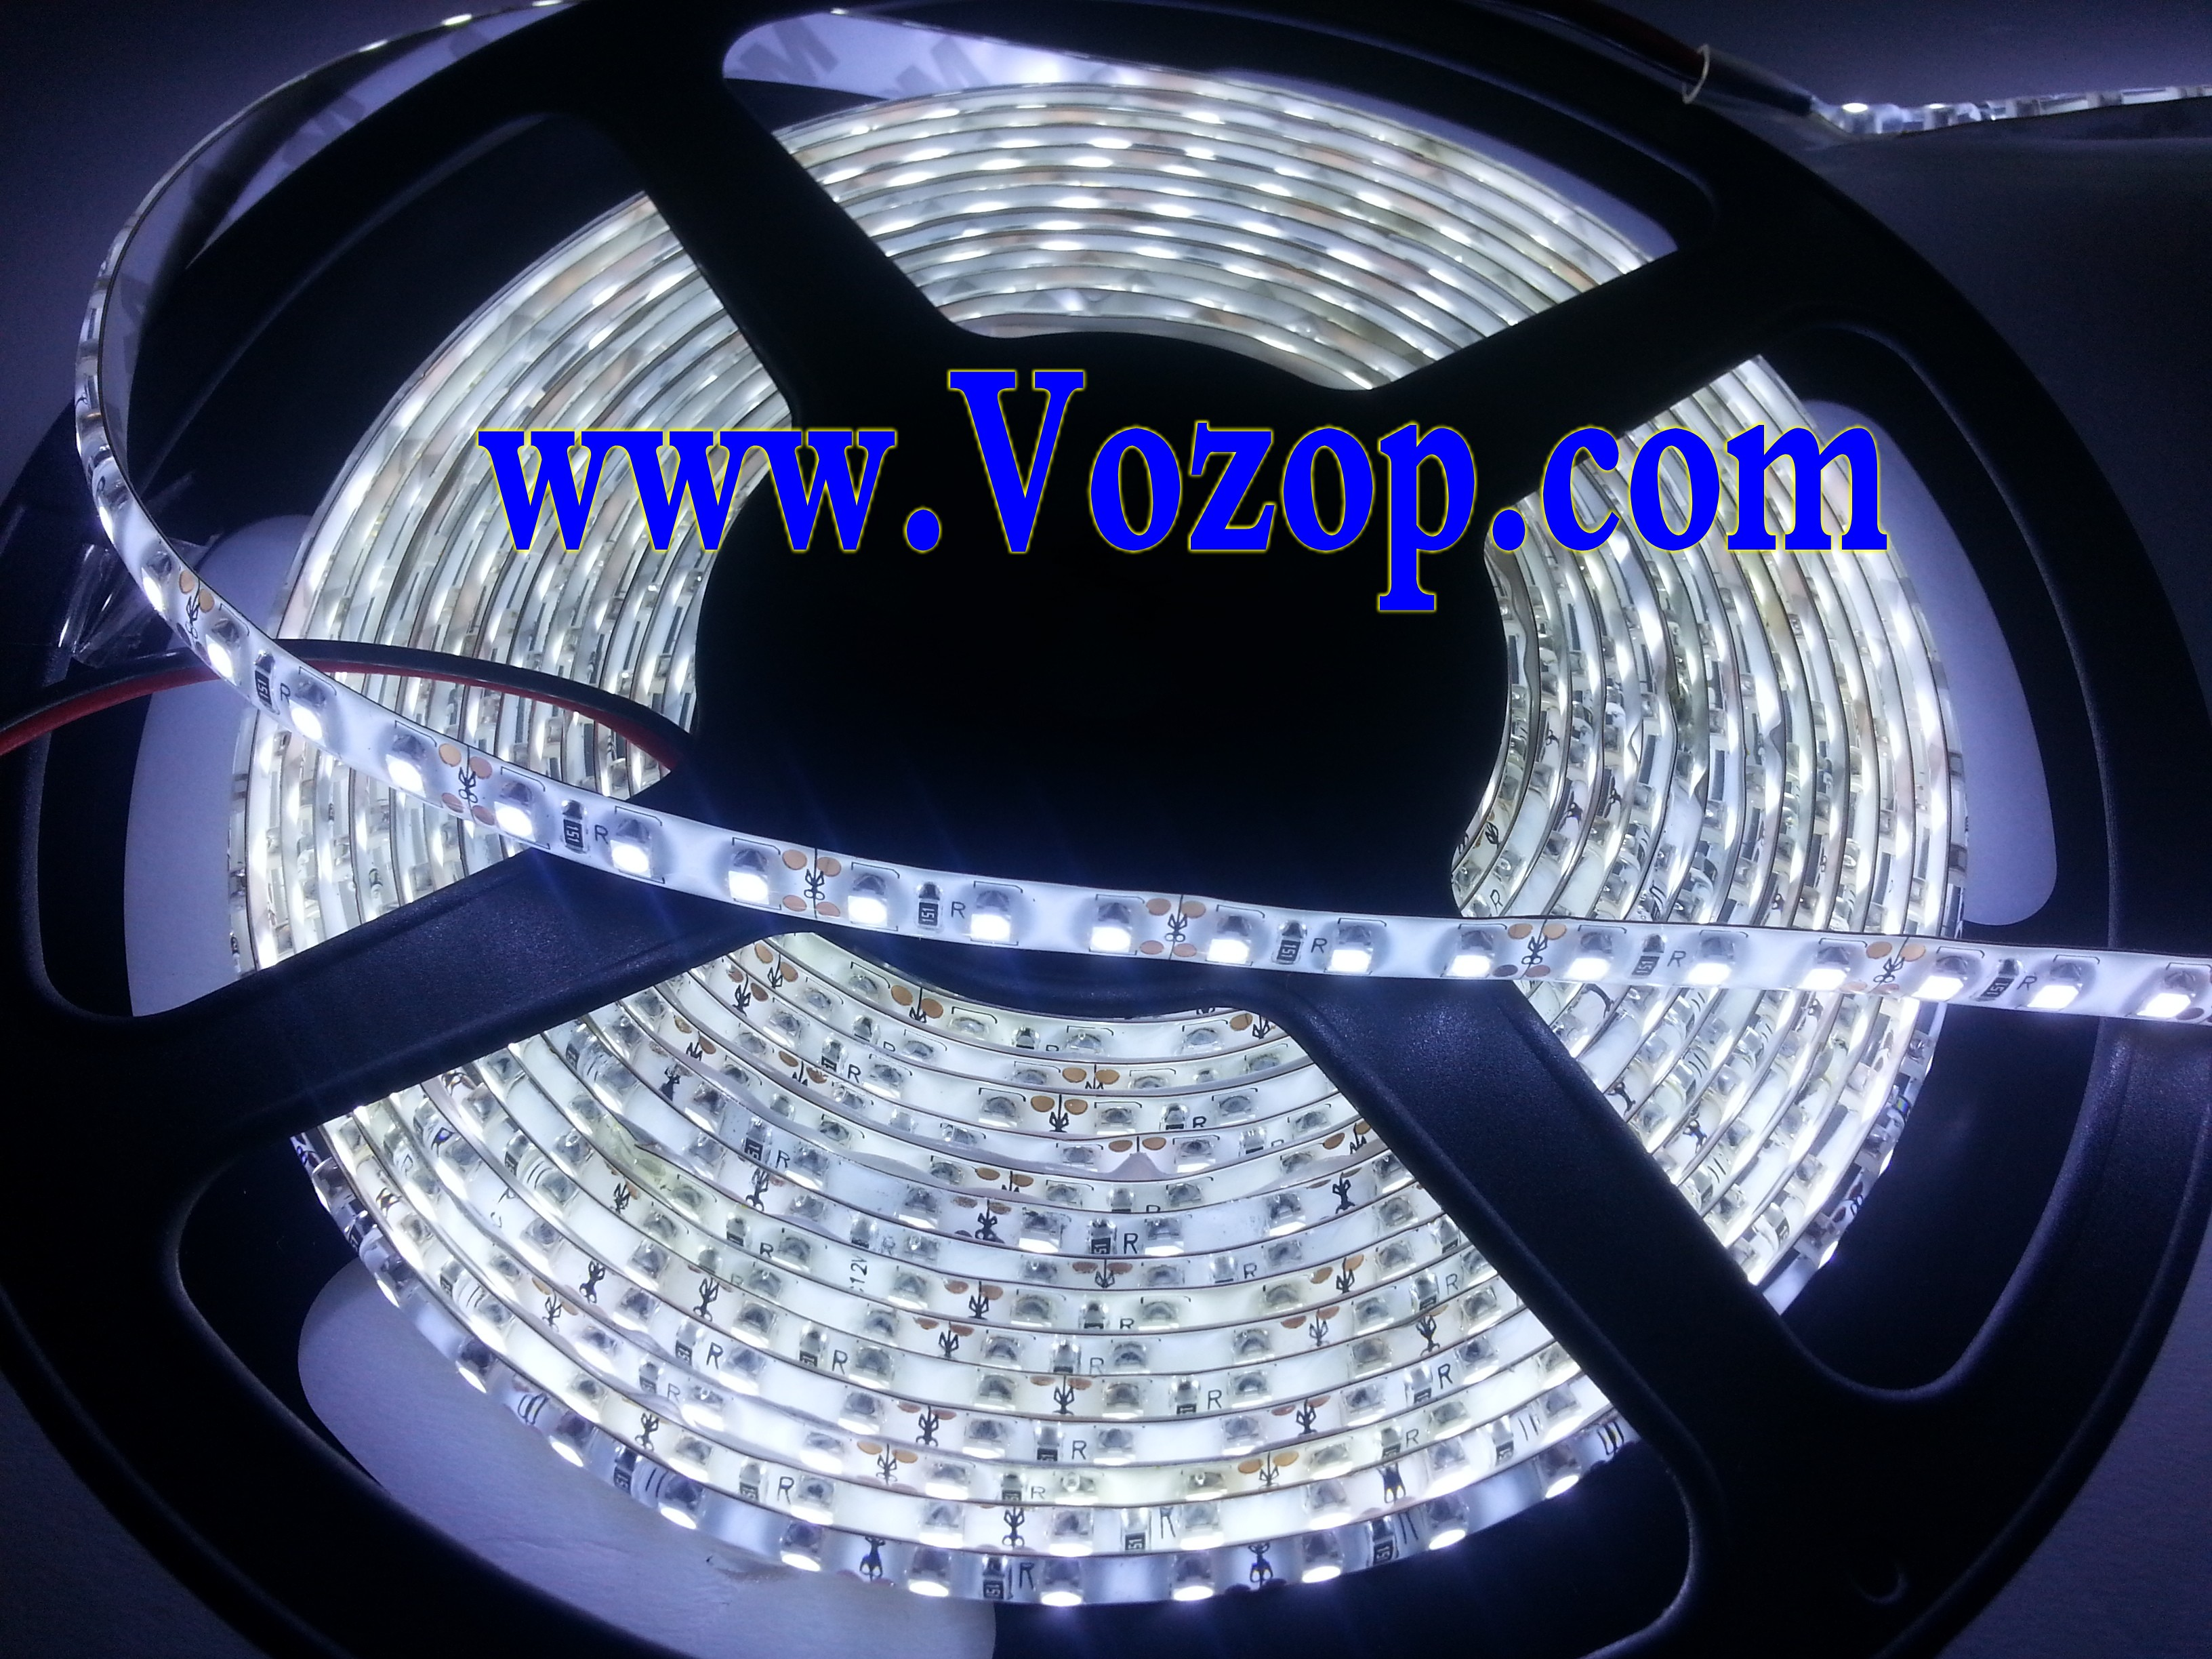 white_3528_LED_tape_strip_5Meters_600_LEDs_SMD_Waterproof_Light_Strip